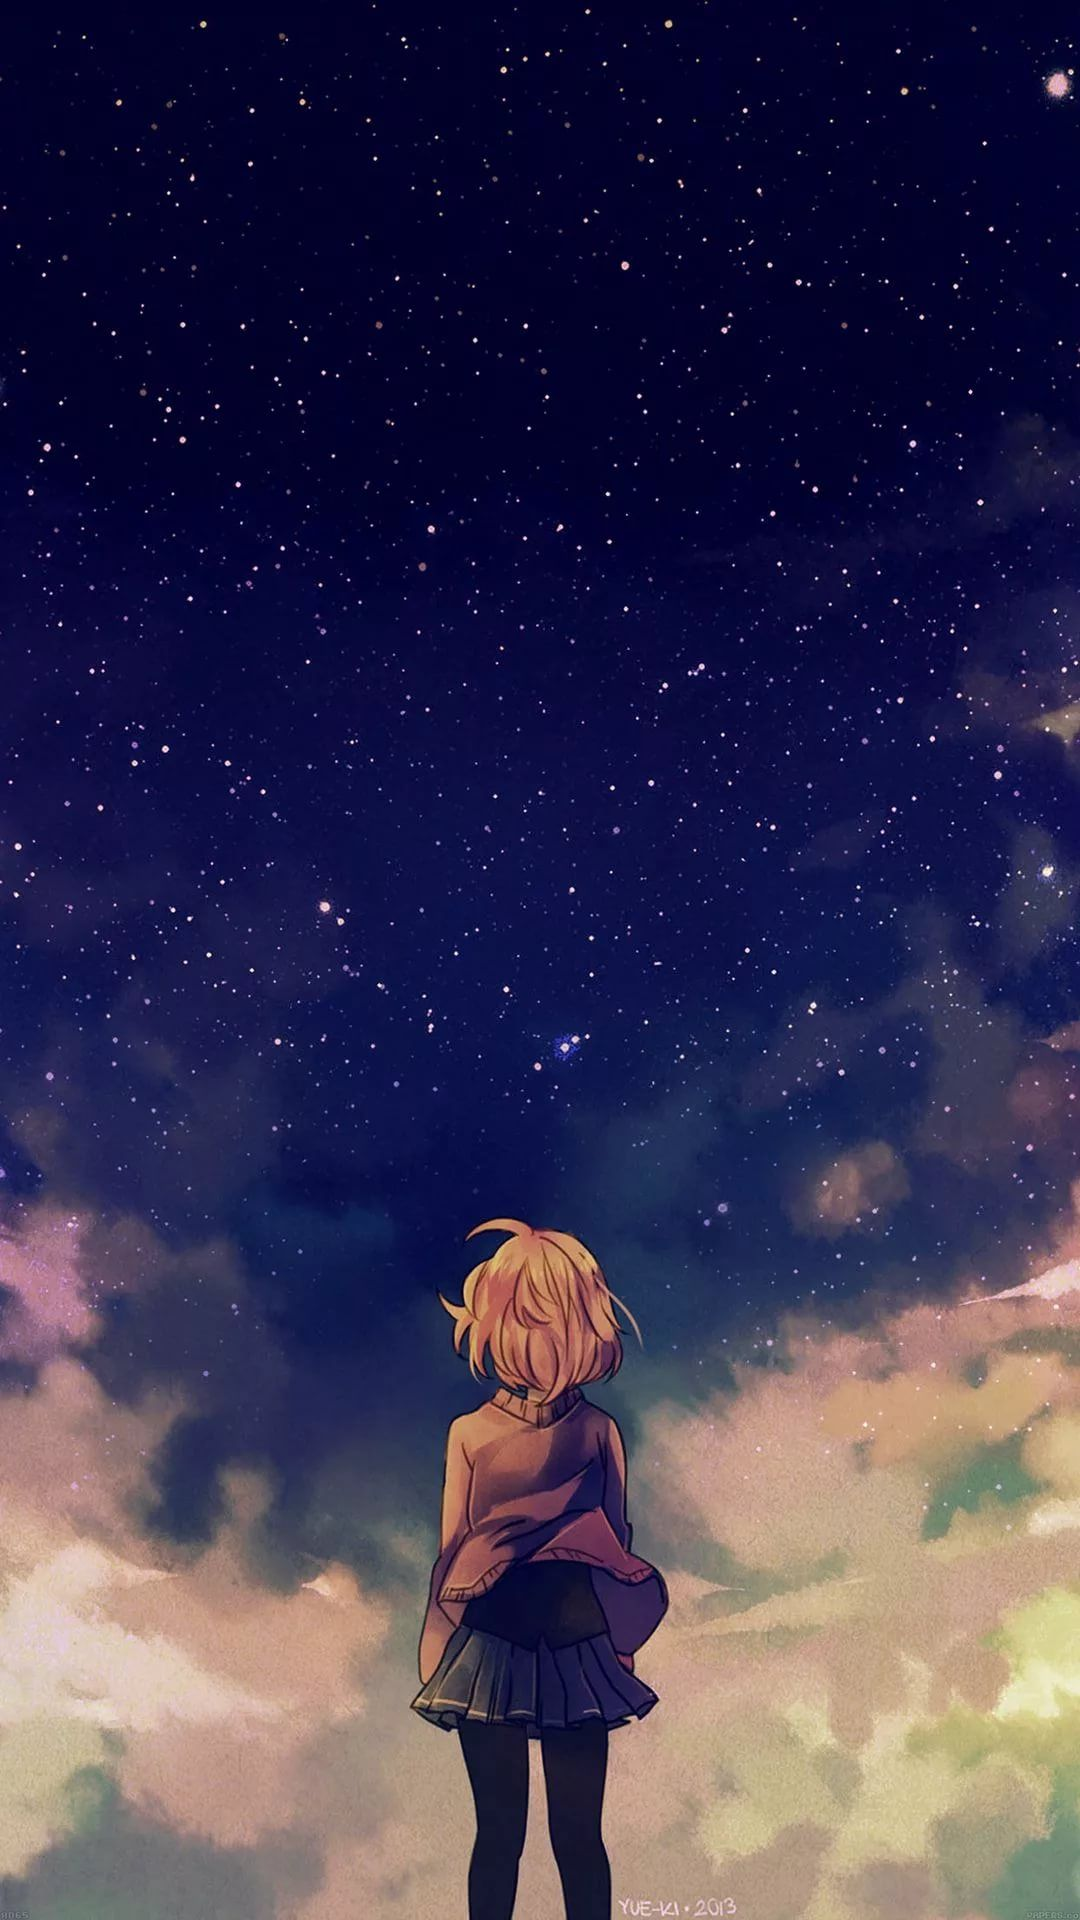 Sad Anime iPhone Wallpapers 43 images   WallpaperBoat 1080x1920